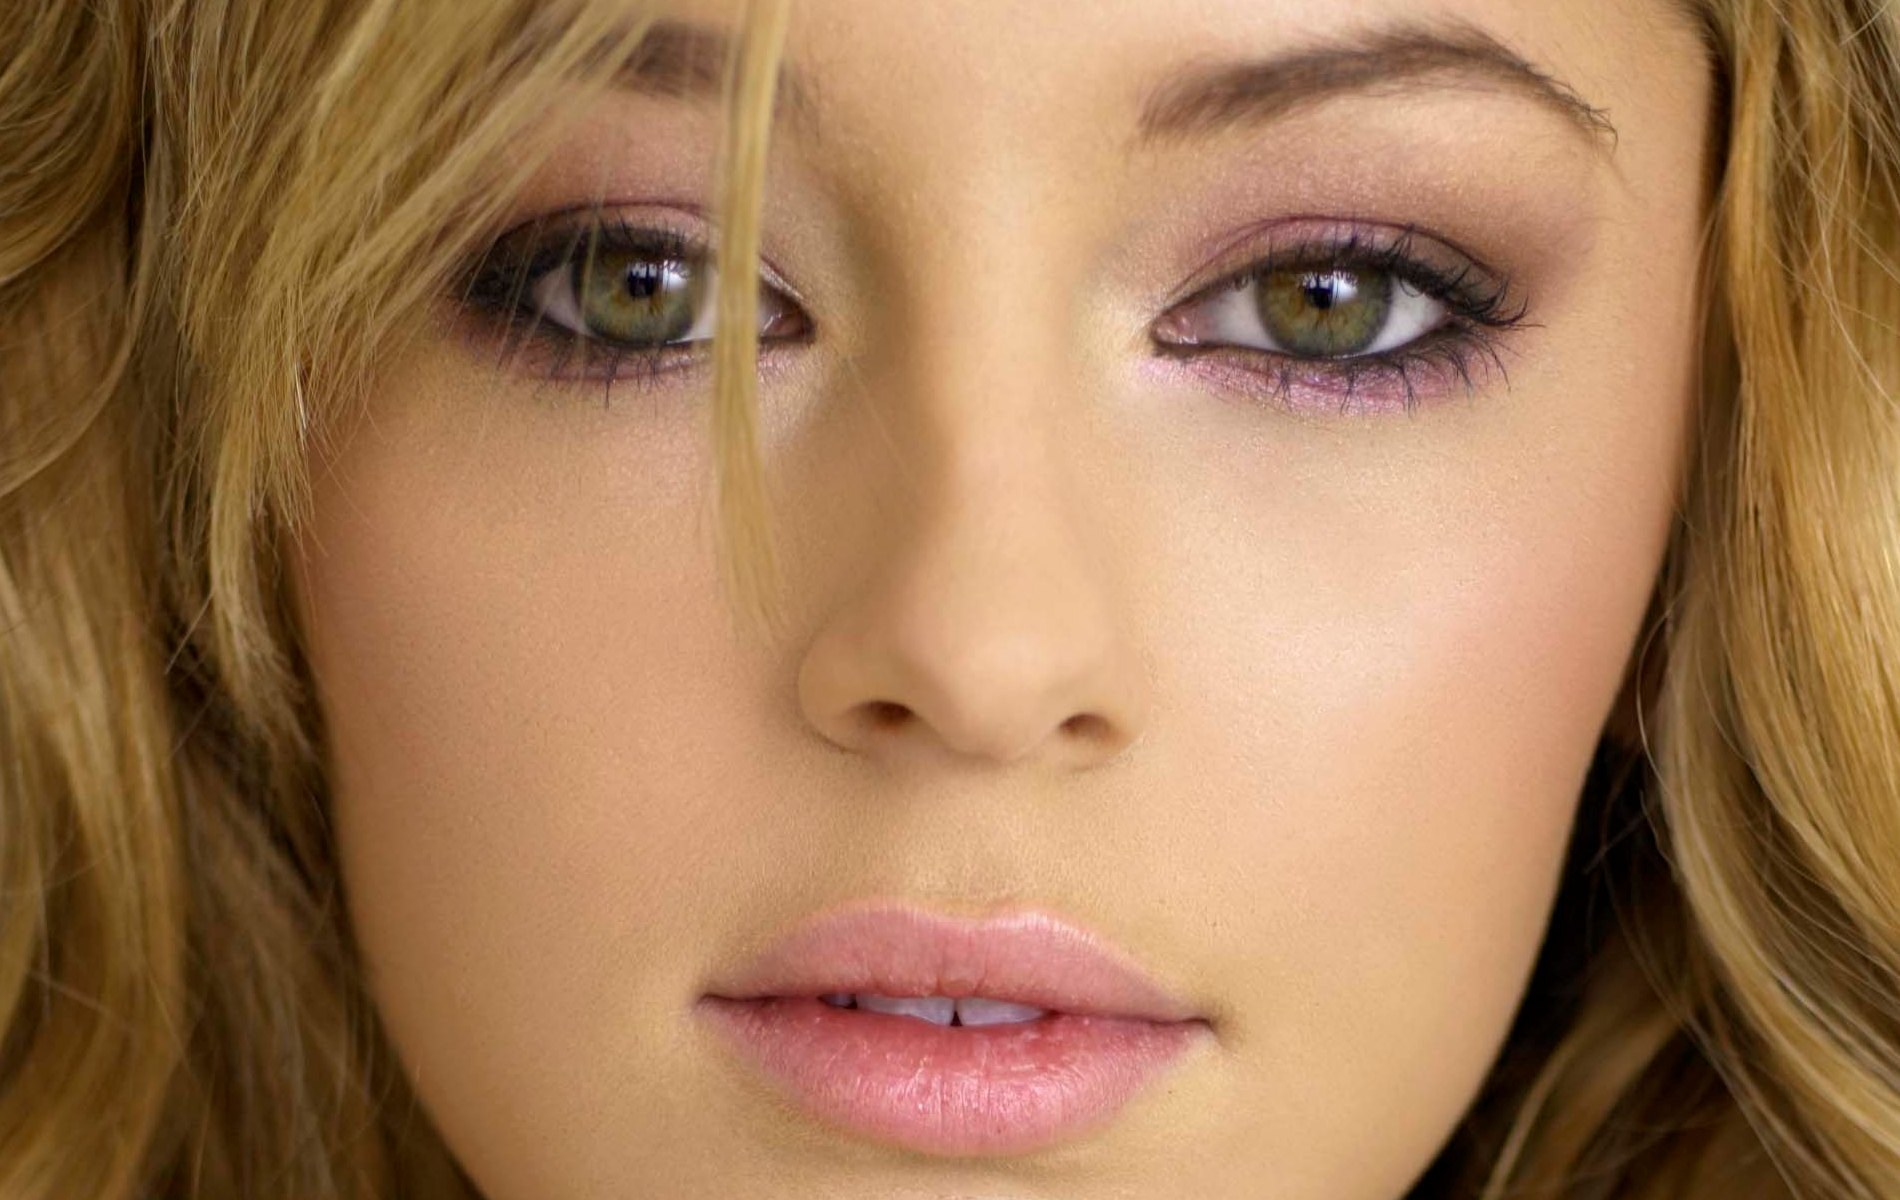 Keeley Hazell Wallpaper and Background Image 1900x1200 ID 1900x1200